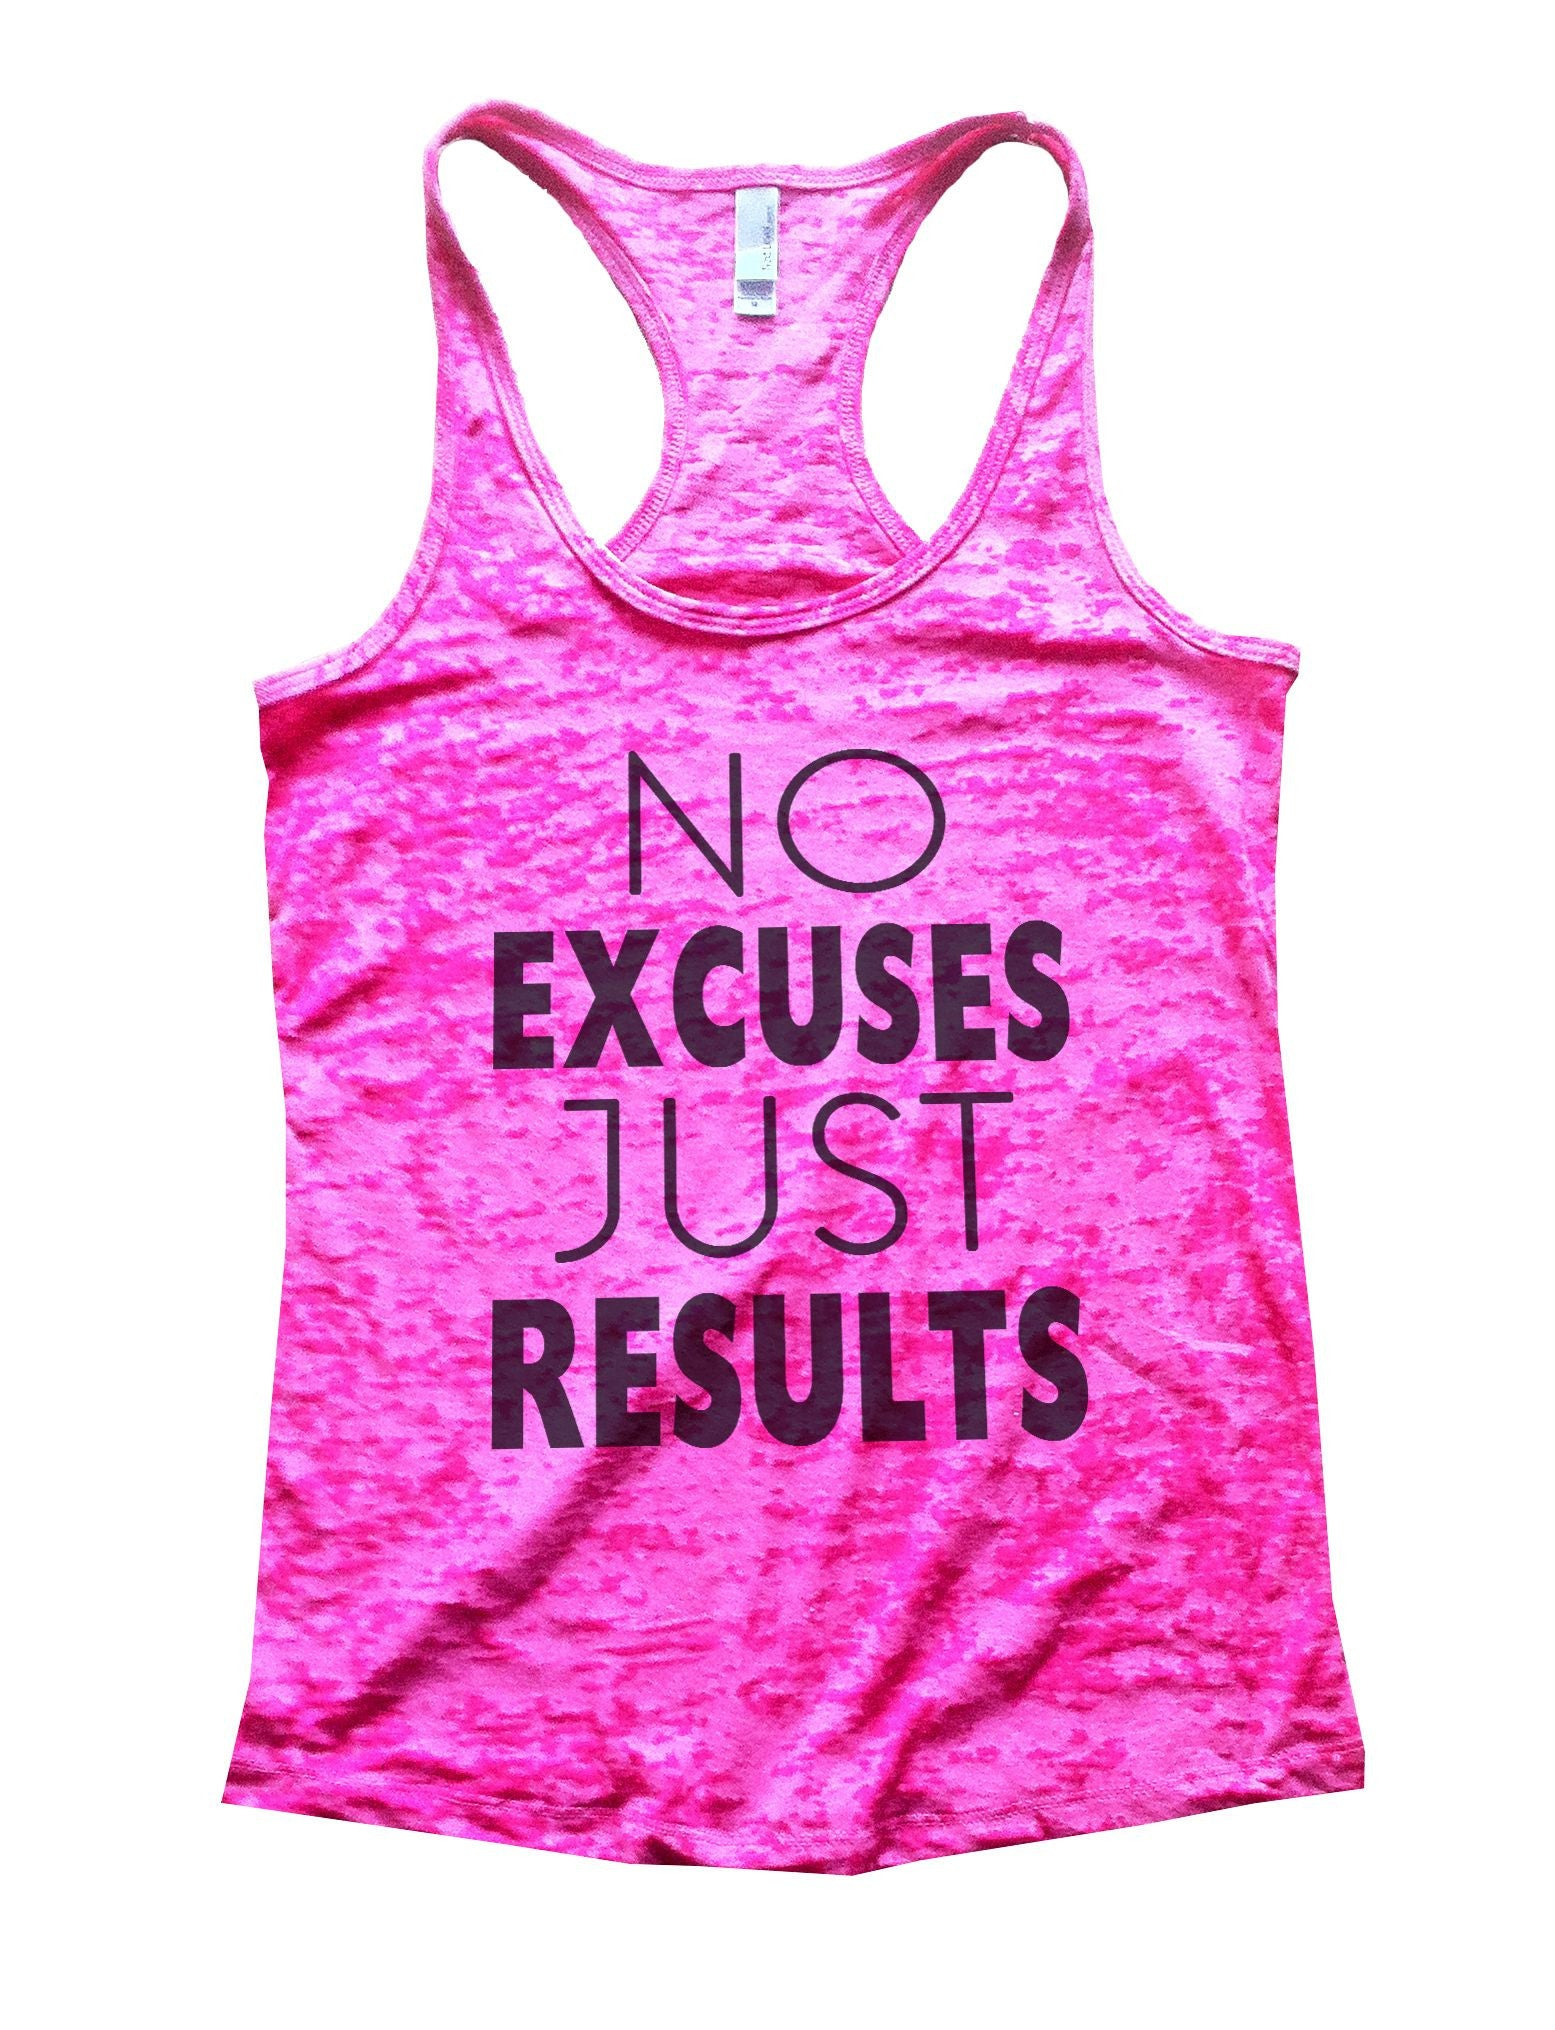 No Excuses Just Results Burnout Tank Top By BurnoutTankTops.com - 747 - Funny Shirts Tank Tops Burnouts and Triblends  - 2